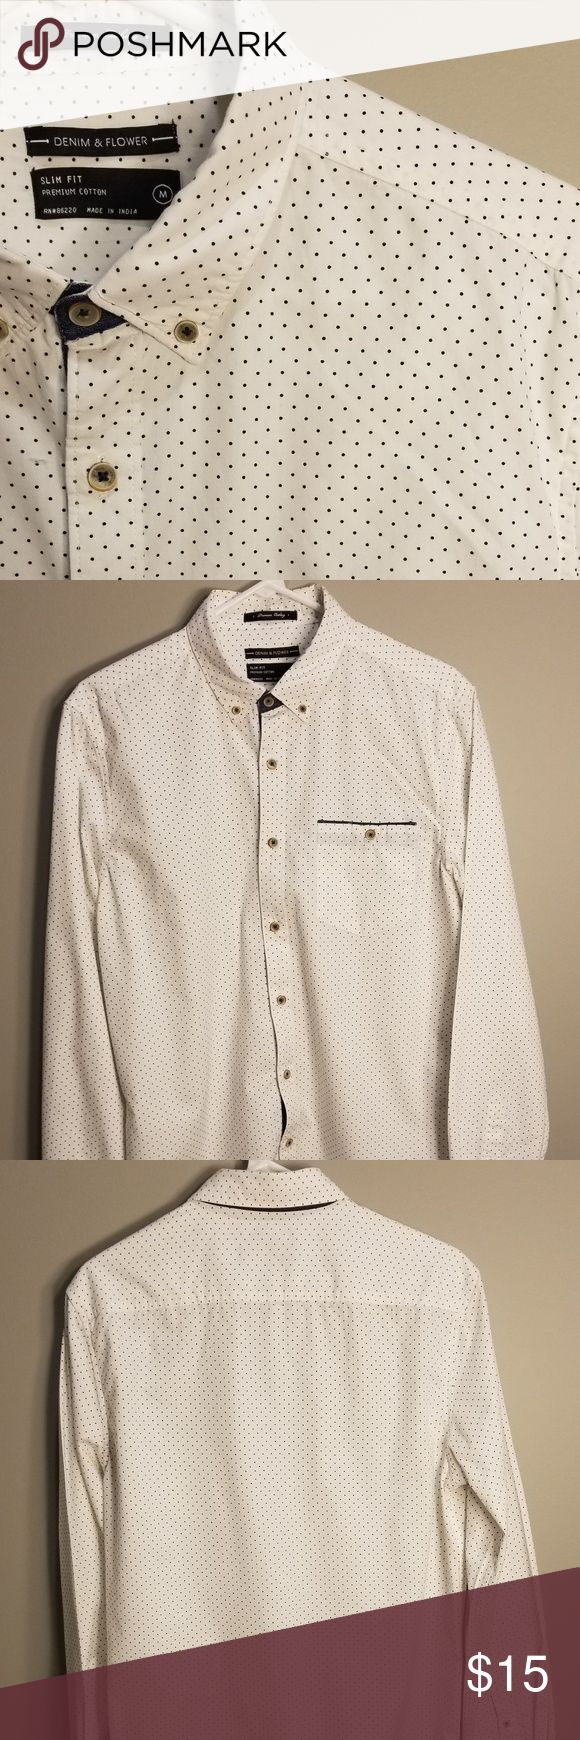 Denim & Flower Slim Fit Dress Shirt Excellent used condition! Like new! Looks great! Denim & Flower Shirts Dress Shirts